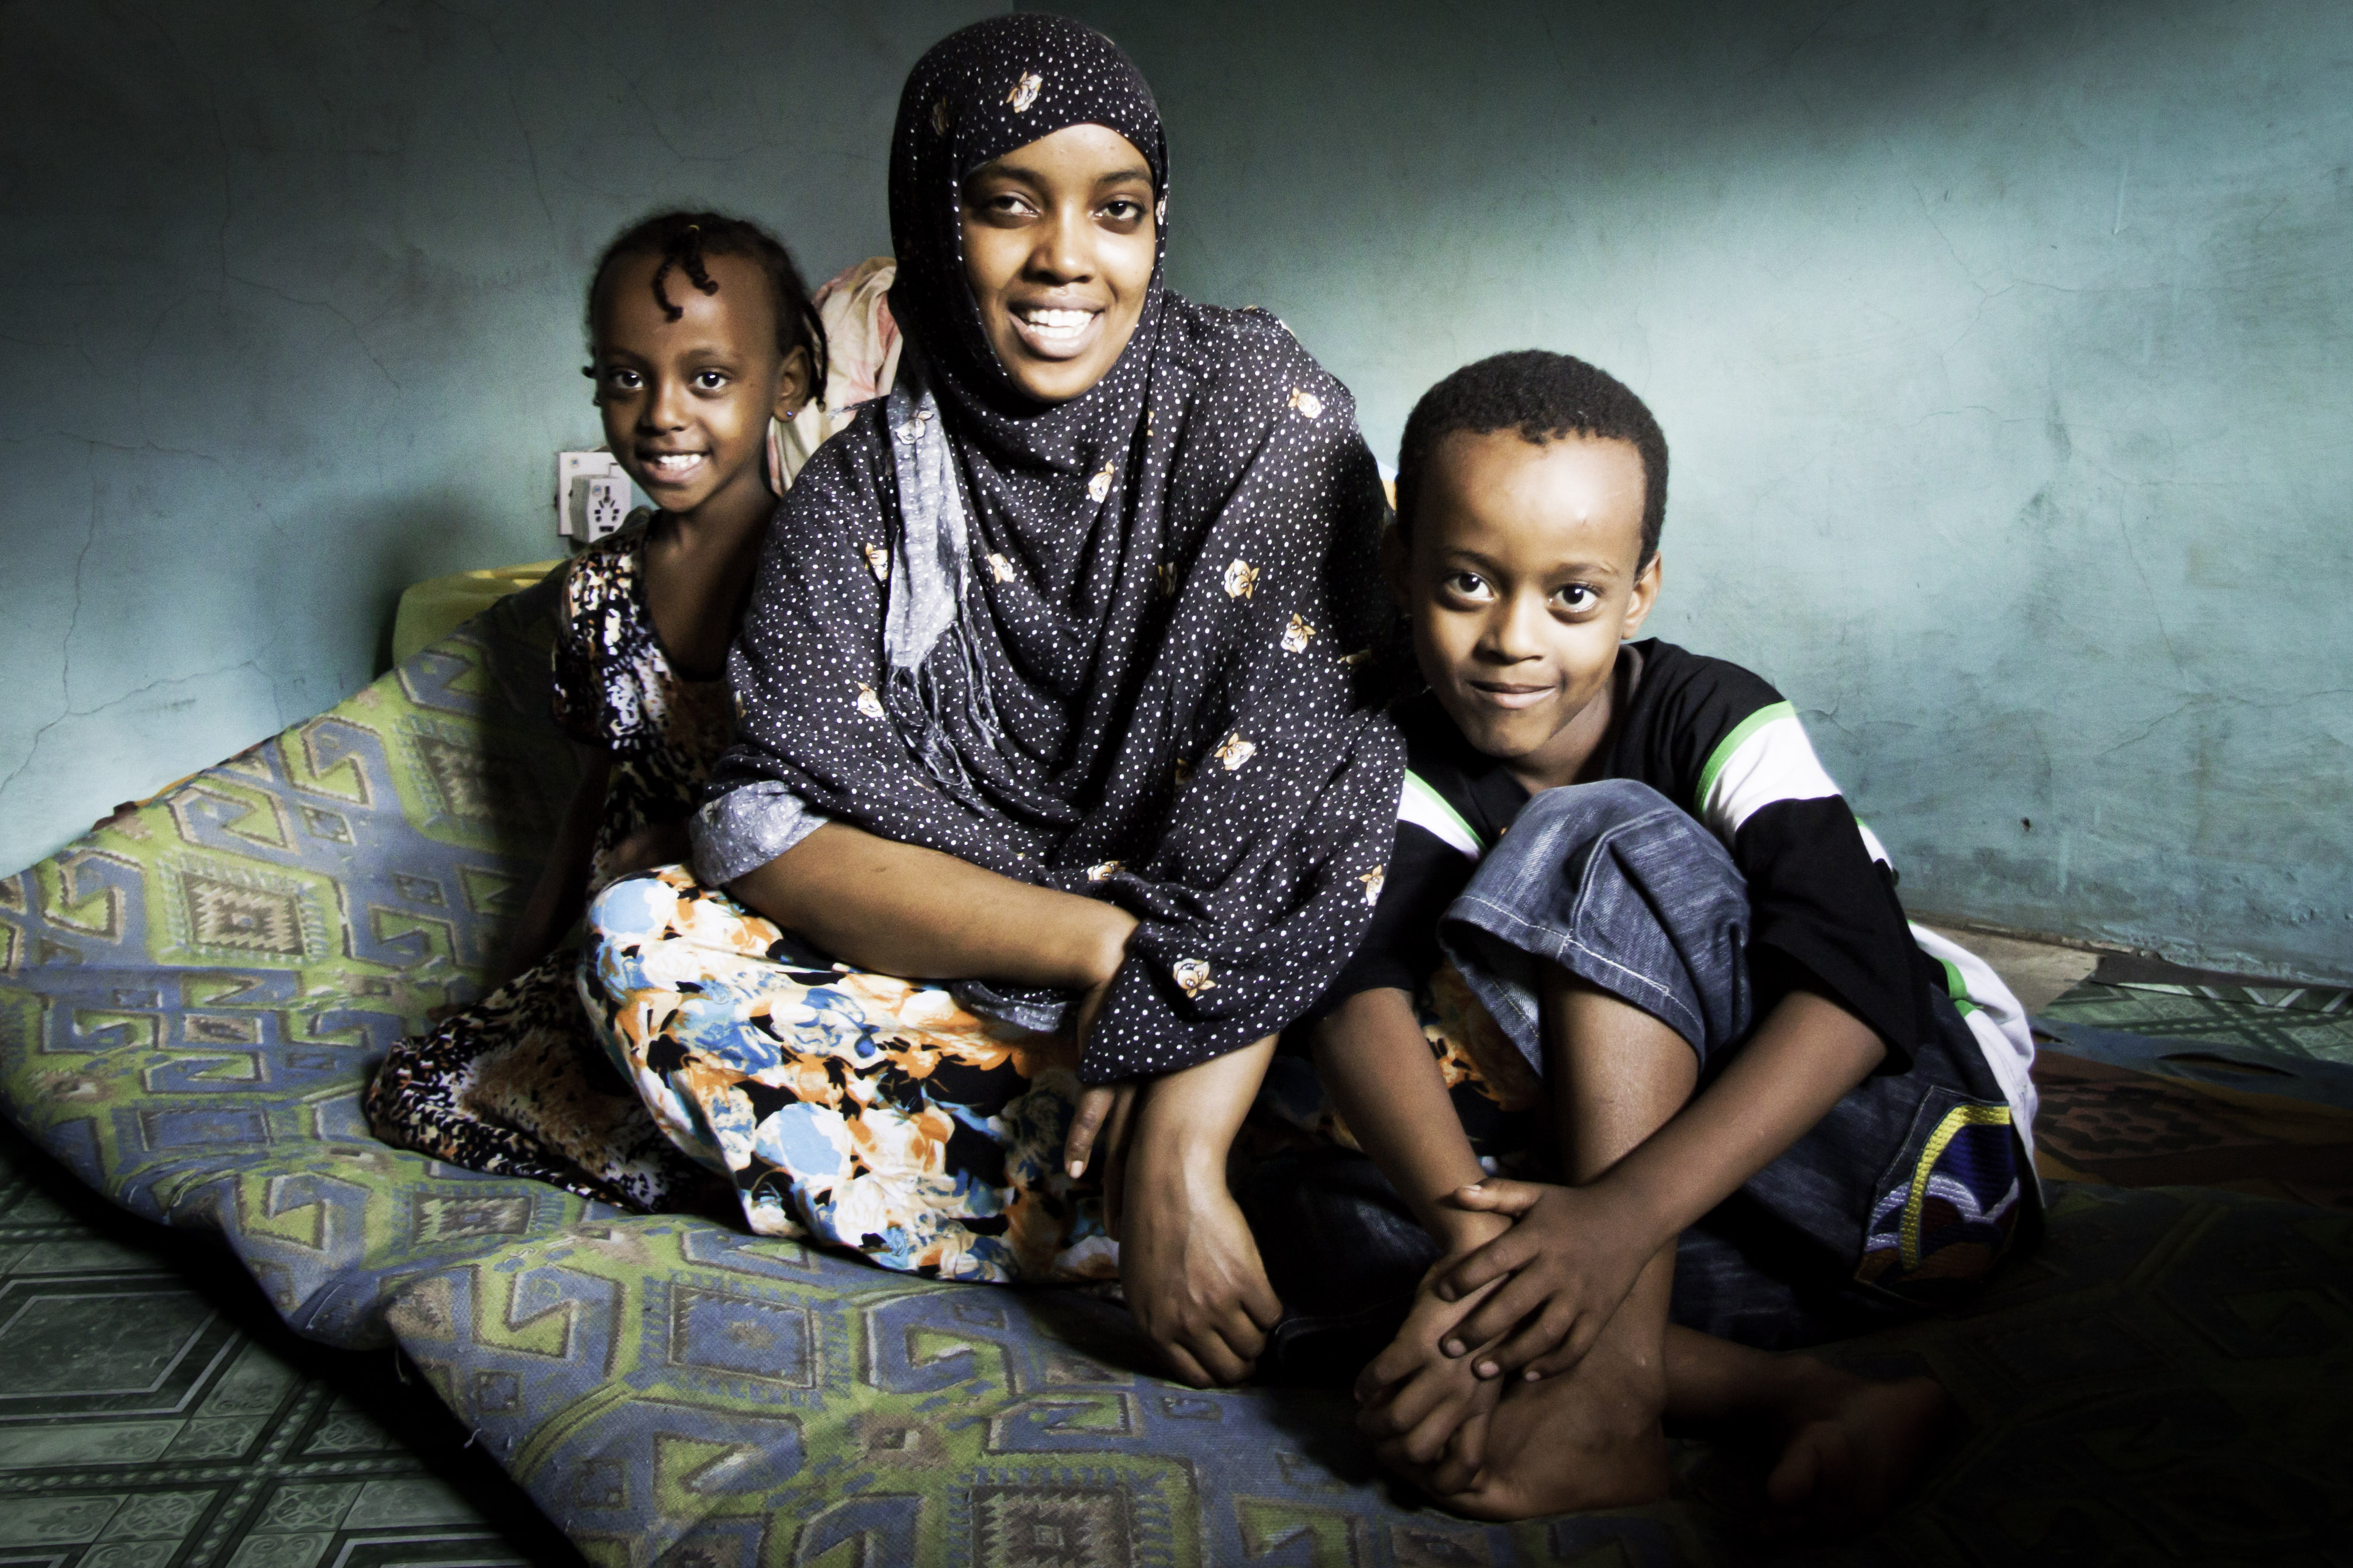 Sabontu and her children waiting for resettlement to Canada